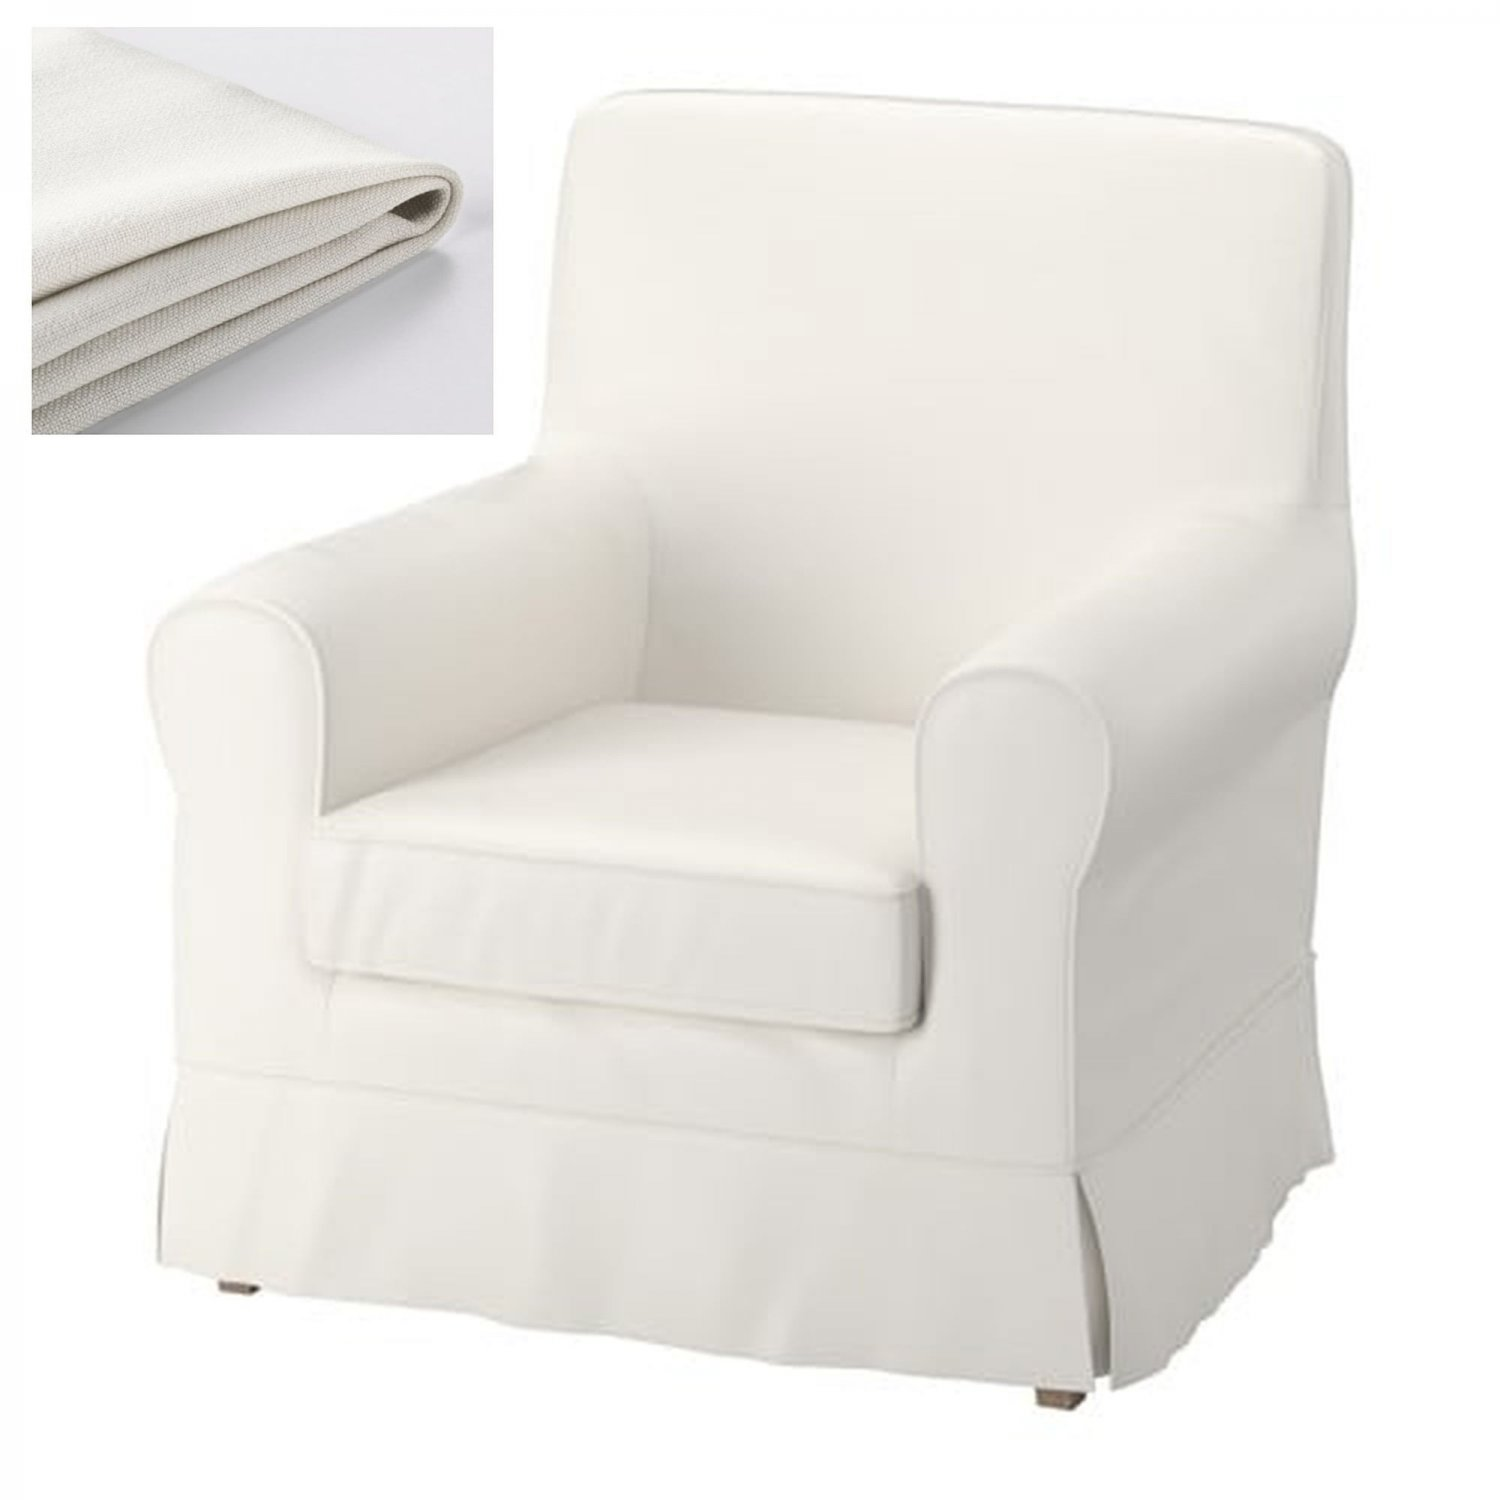 ikea jennylund chair covers uk recliner chairs for sale ektorp armchair slipcover cover